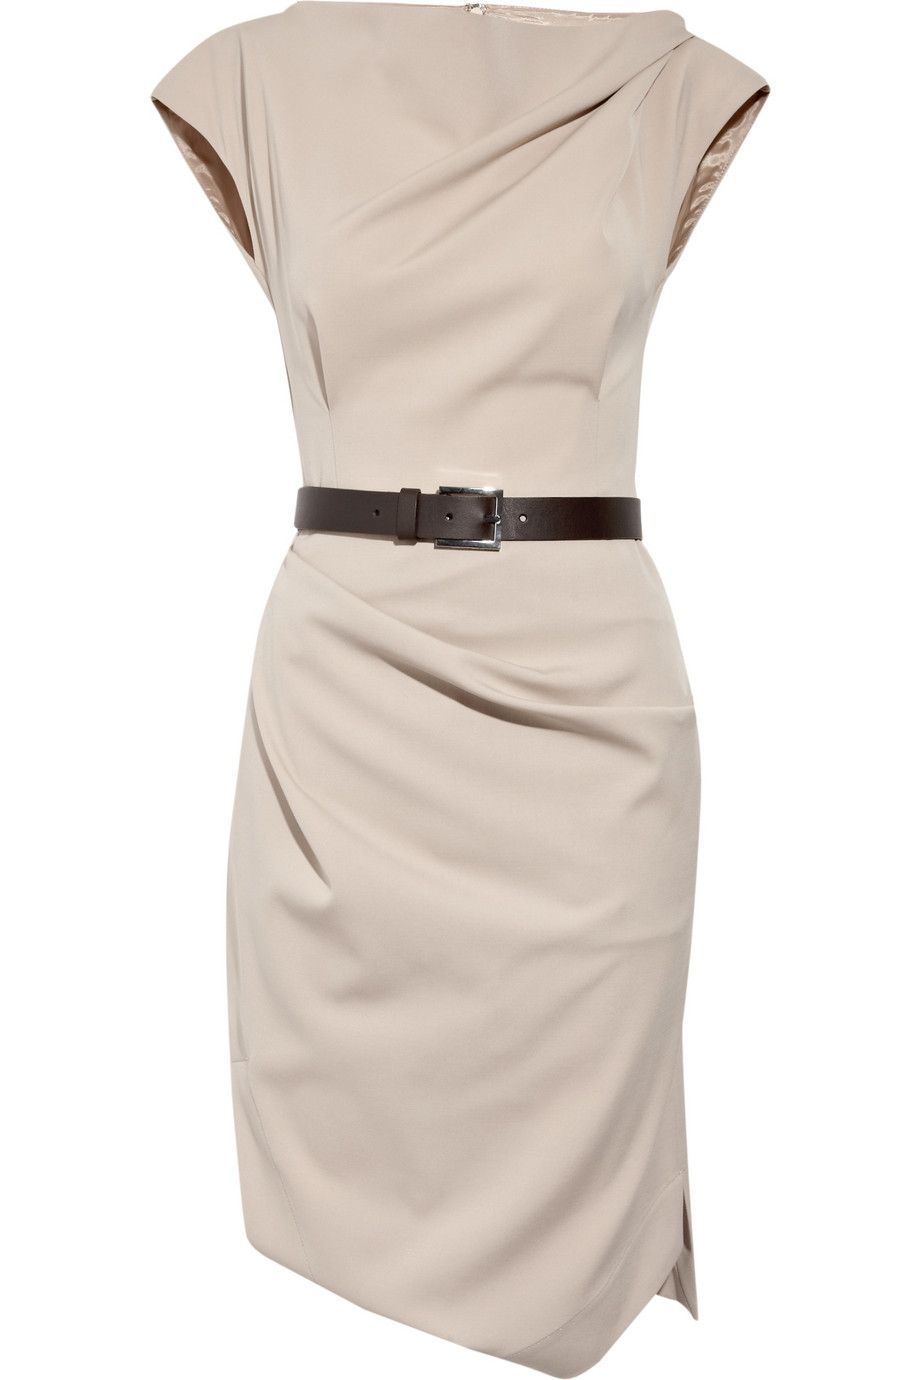 Love Want Need Michael Kors Stretch Wool Dress Style